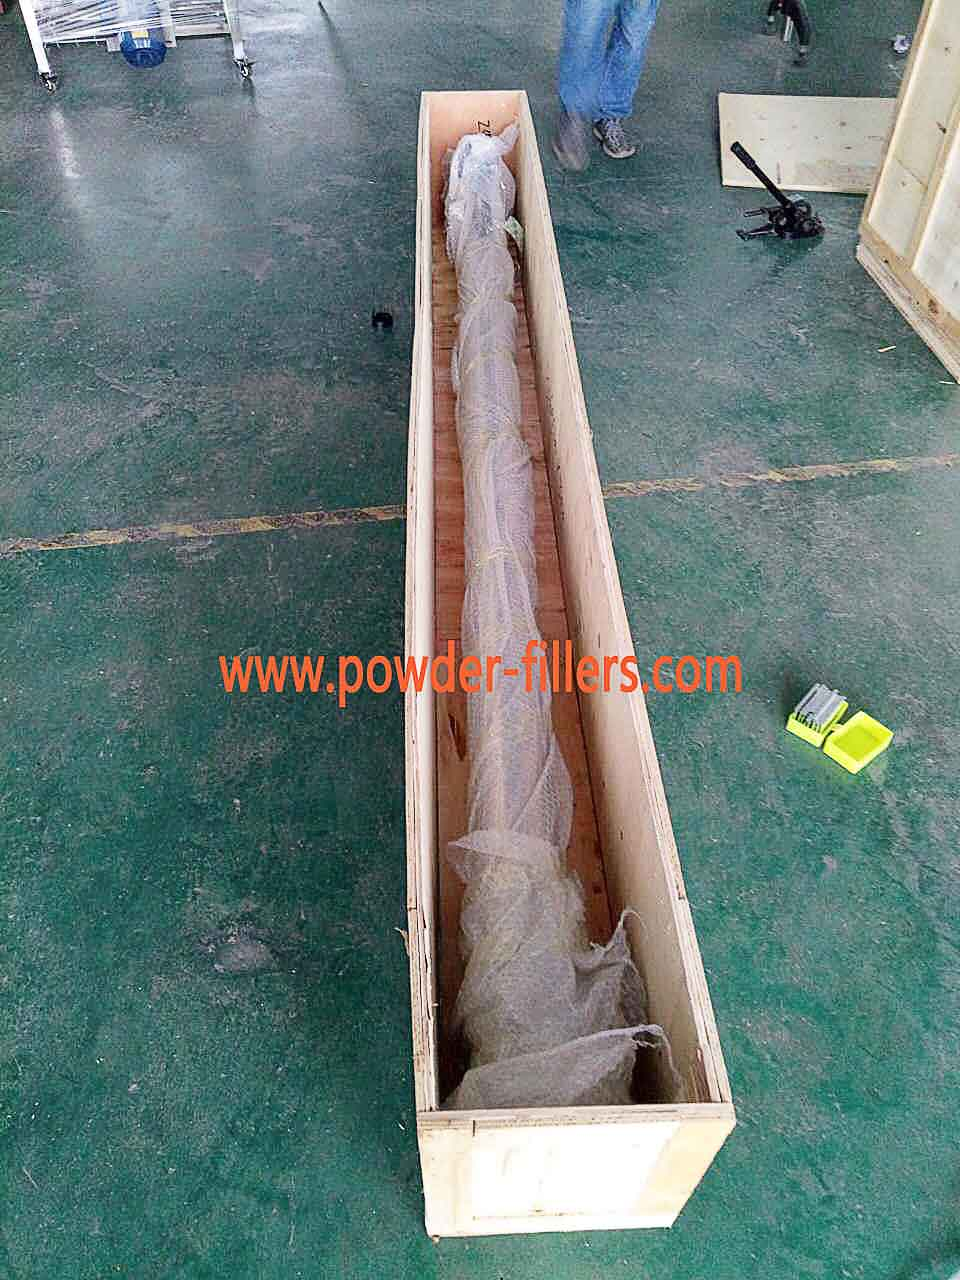 The Conveyor of Screw Feeder packaging Plywood Boxes